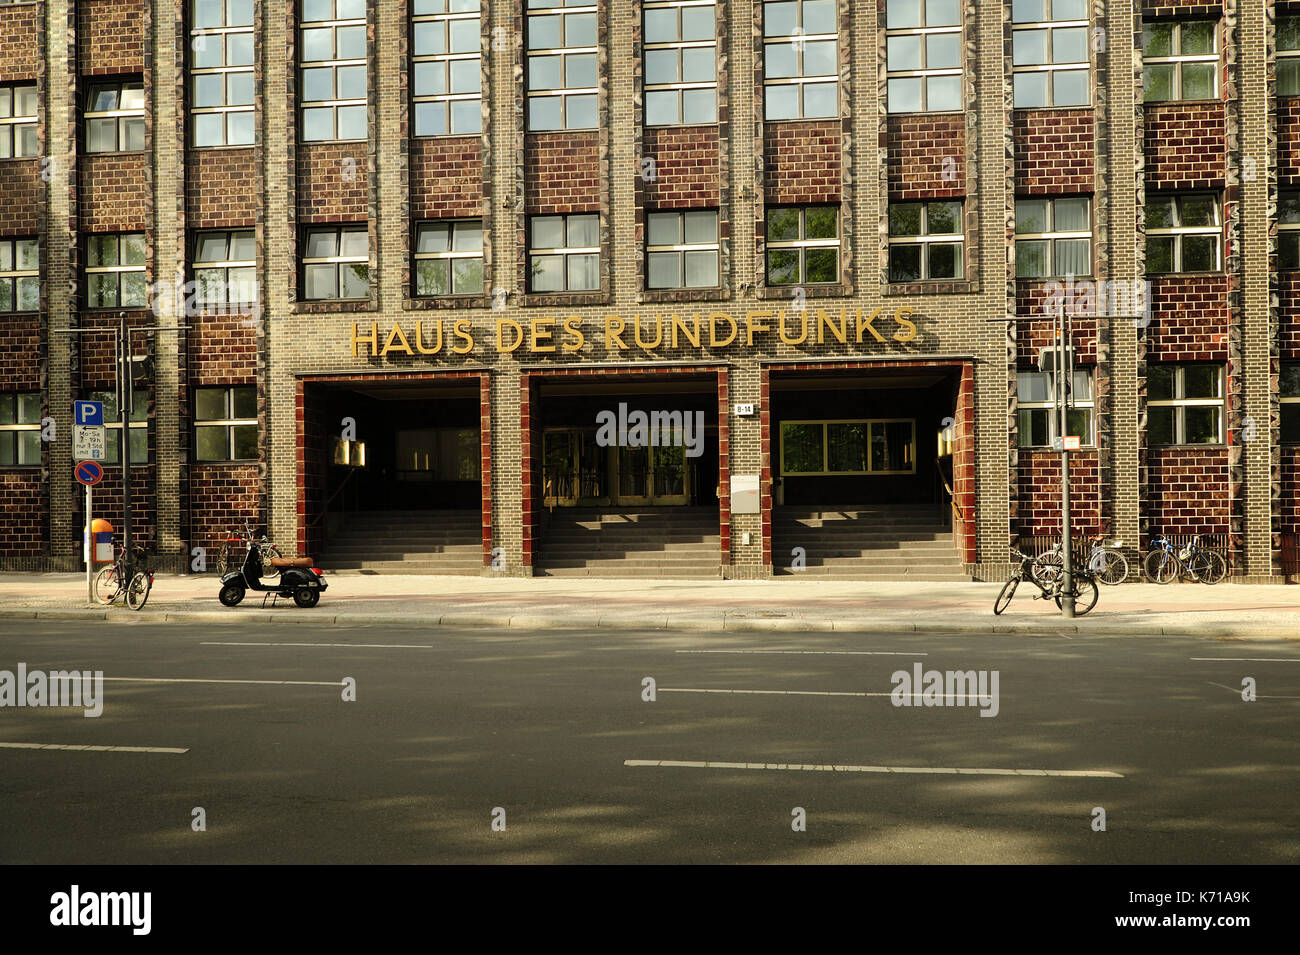 Berlin, architecture, haus des rundfunks berlin, Hans Poelzig,House of Broadcasting, RBB, - Stock Image